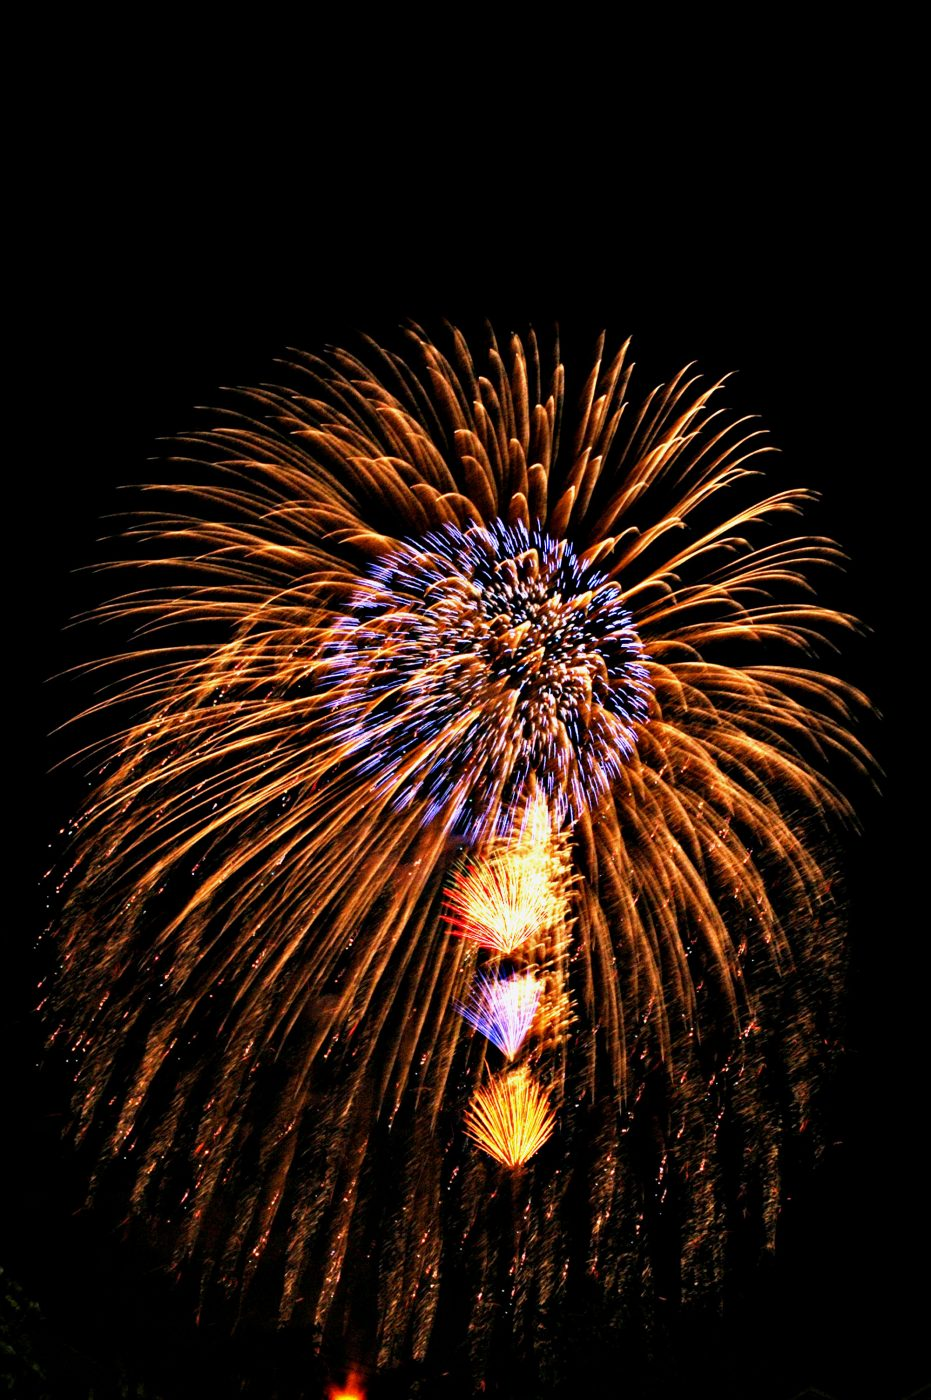 Firework, by Saifon Narongrat (brought to you by WindermereSun.com)